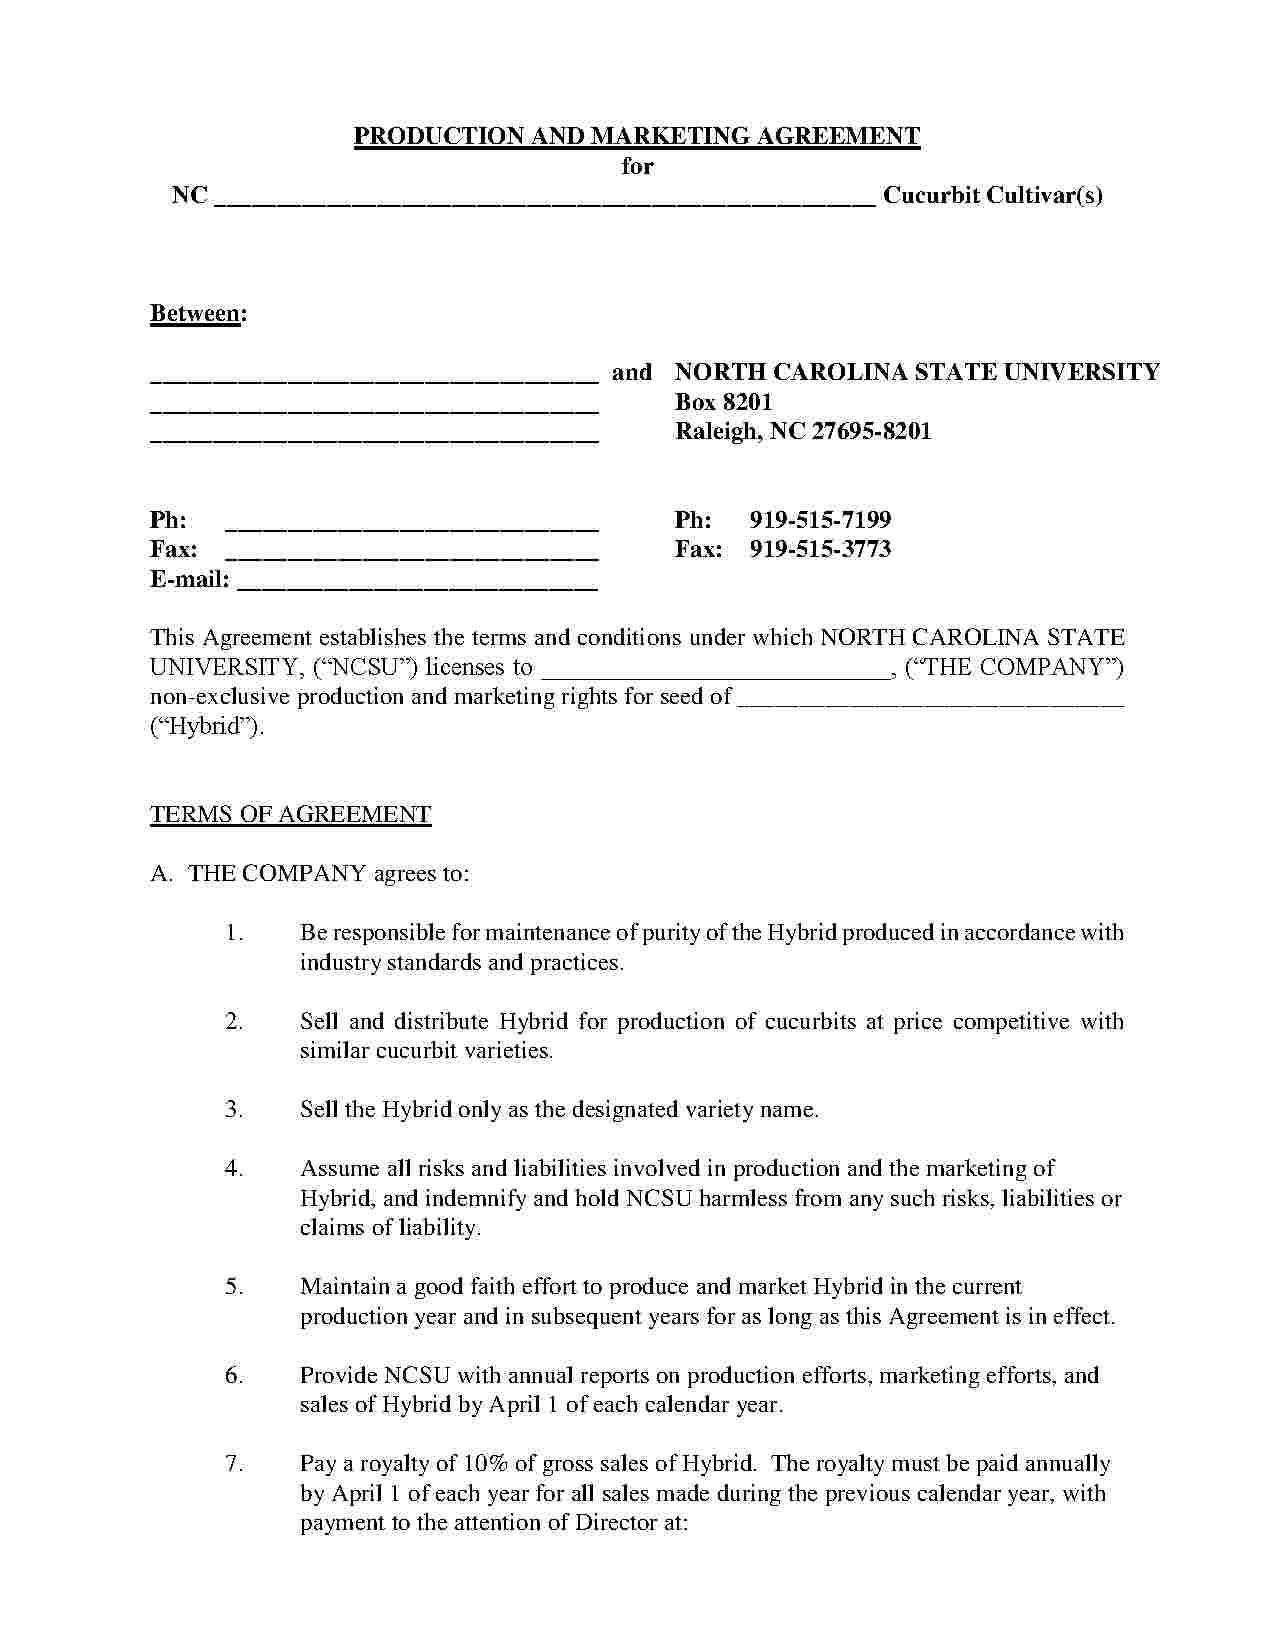 Royalty Agreement Template Free Download